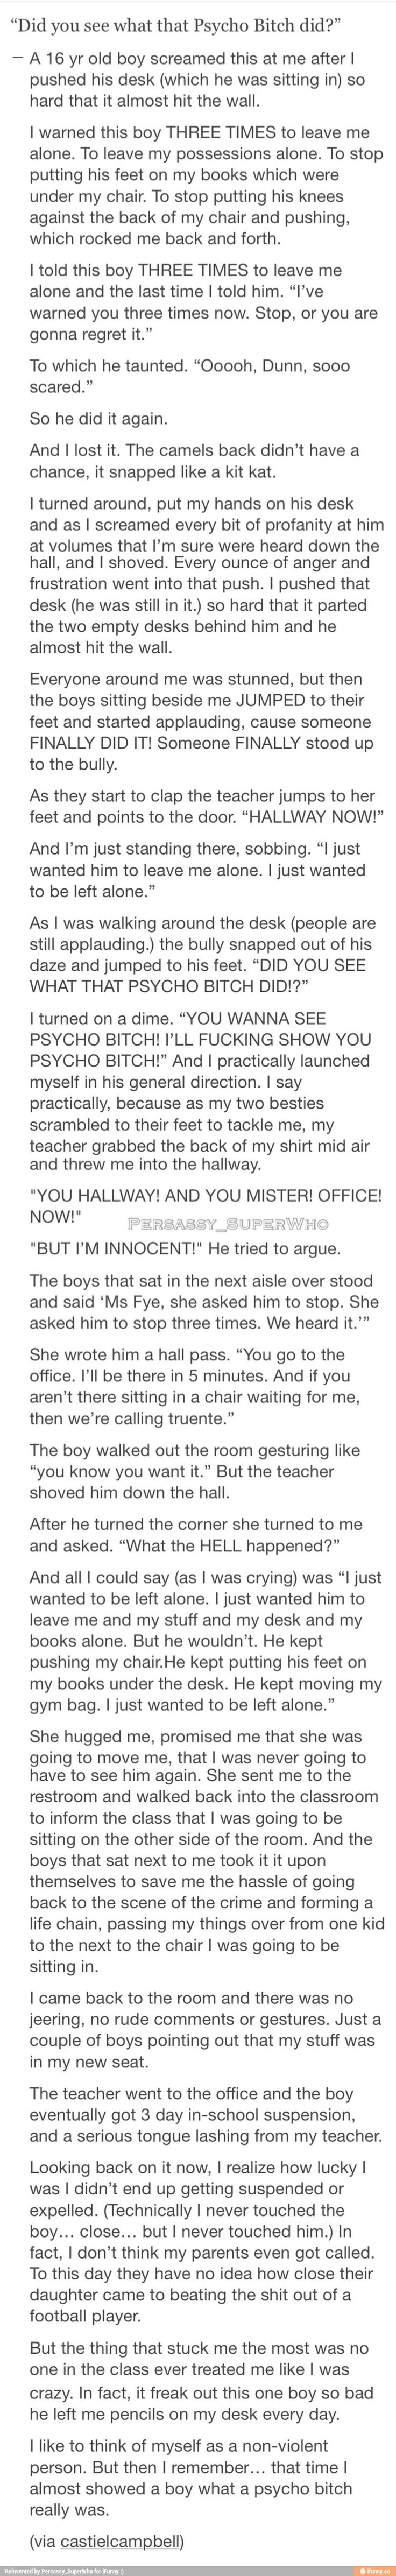 that's great. i  wish more people would read this and see what they could accomplish if they only stood up to bullies